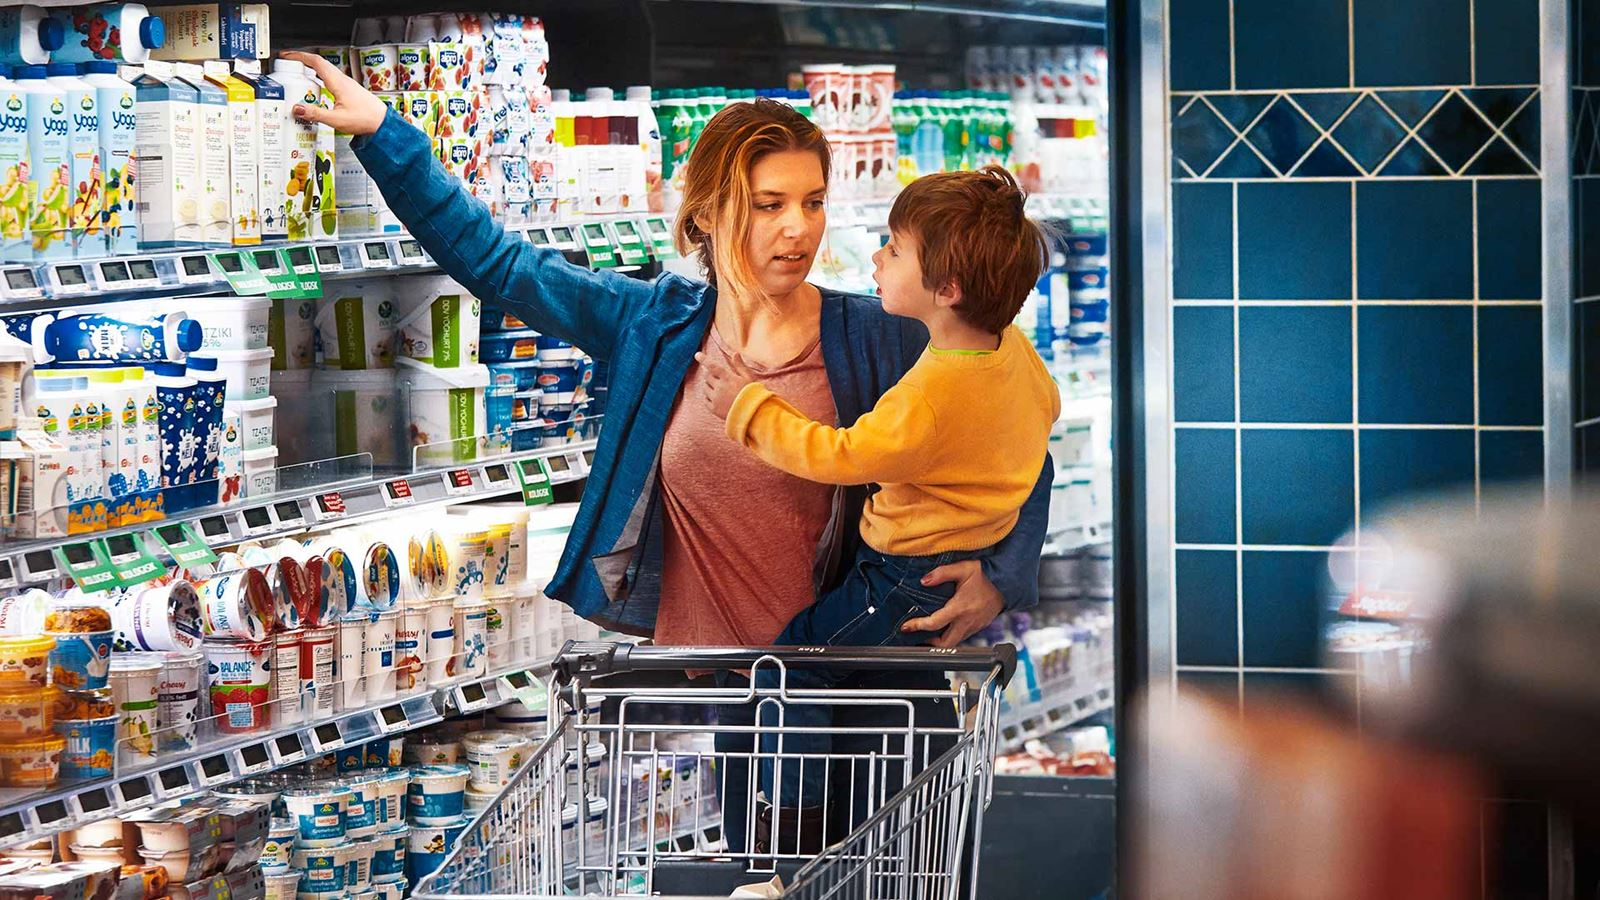 A mother holding her child and picking up a carton of Arla milk at a supermarket